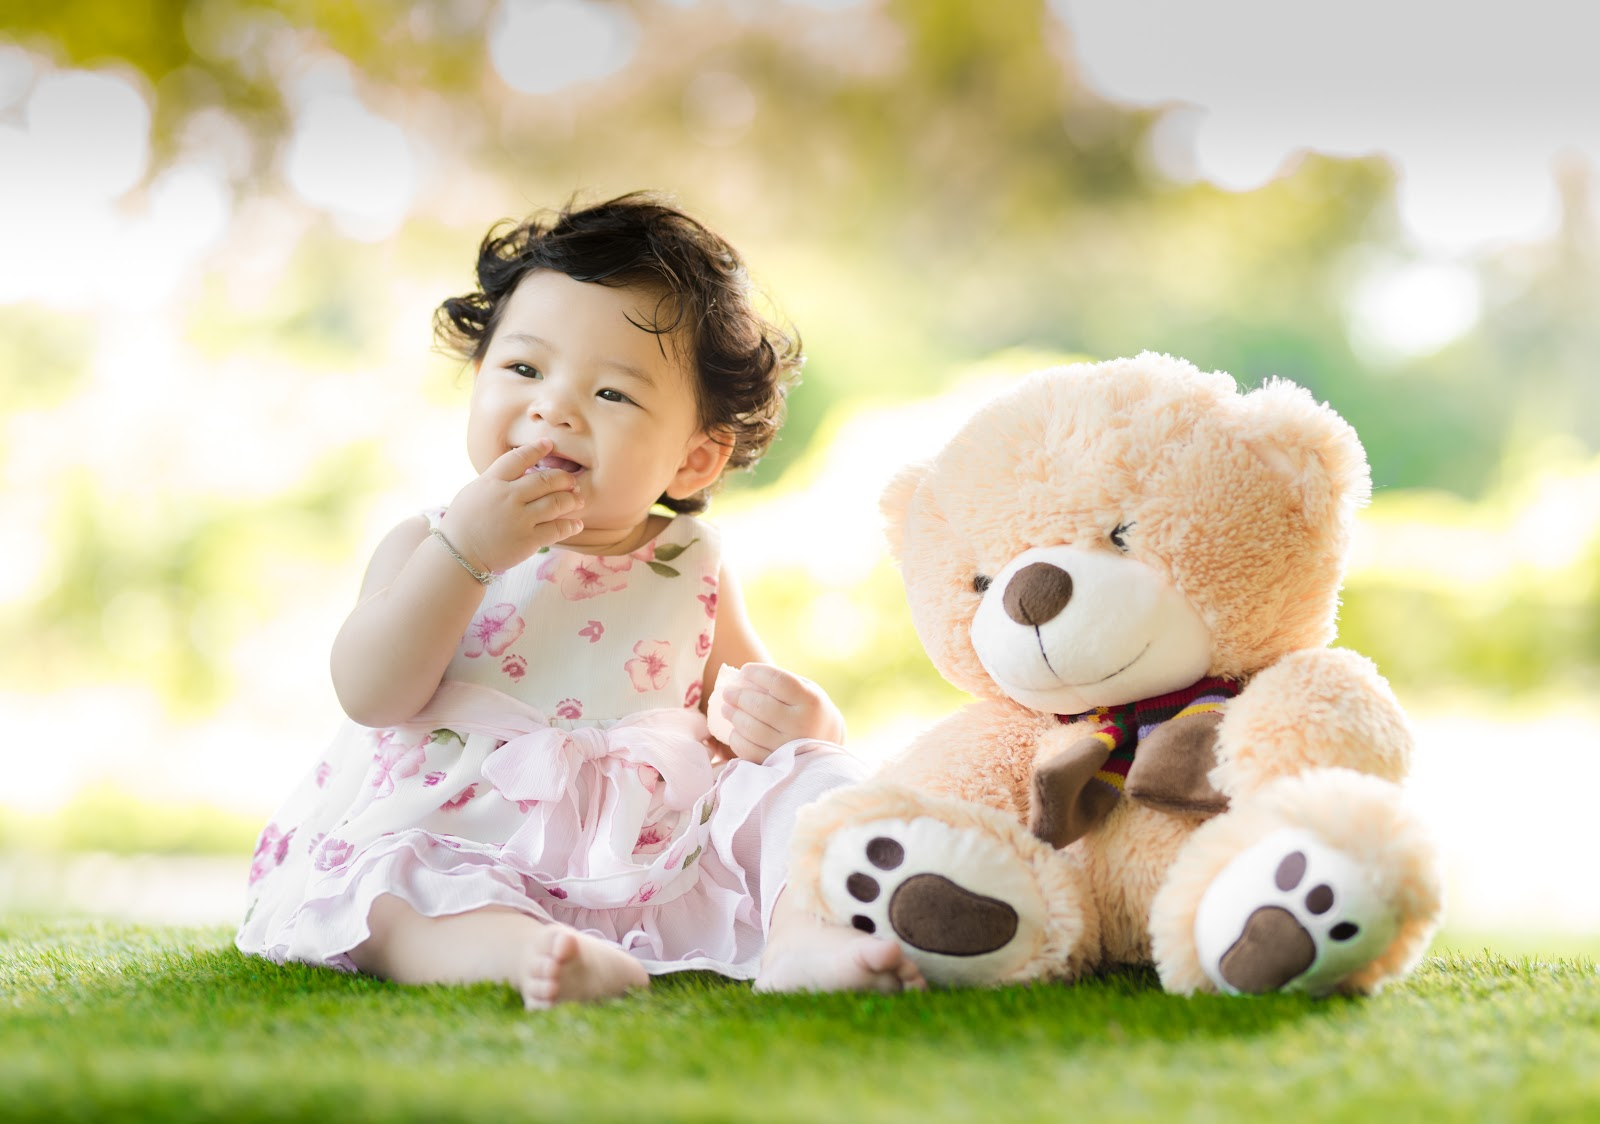 baby-sitting-on-green-grass-beside-bear-plush-toy-at-daytime-pictures